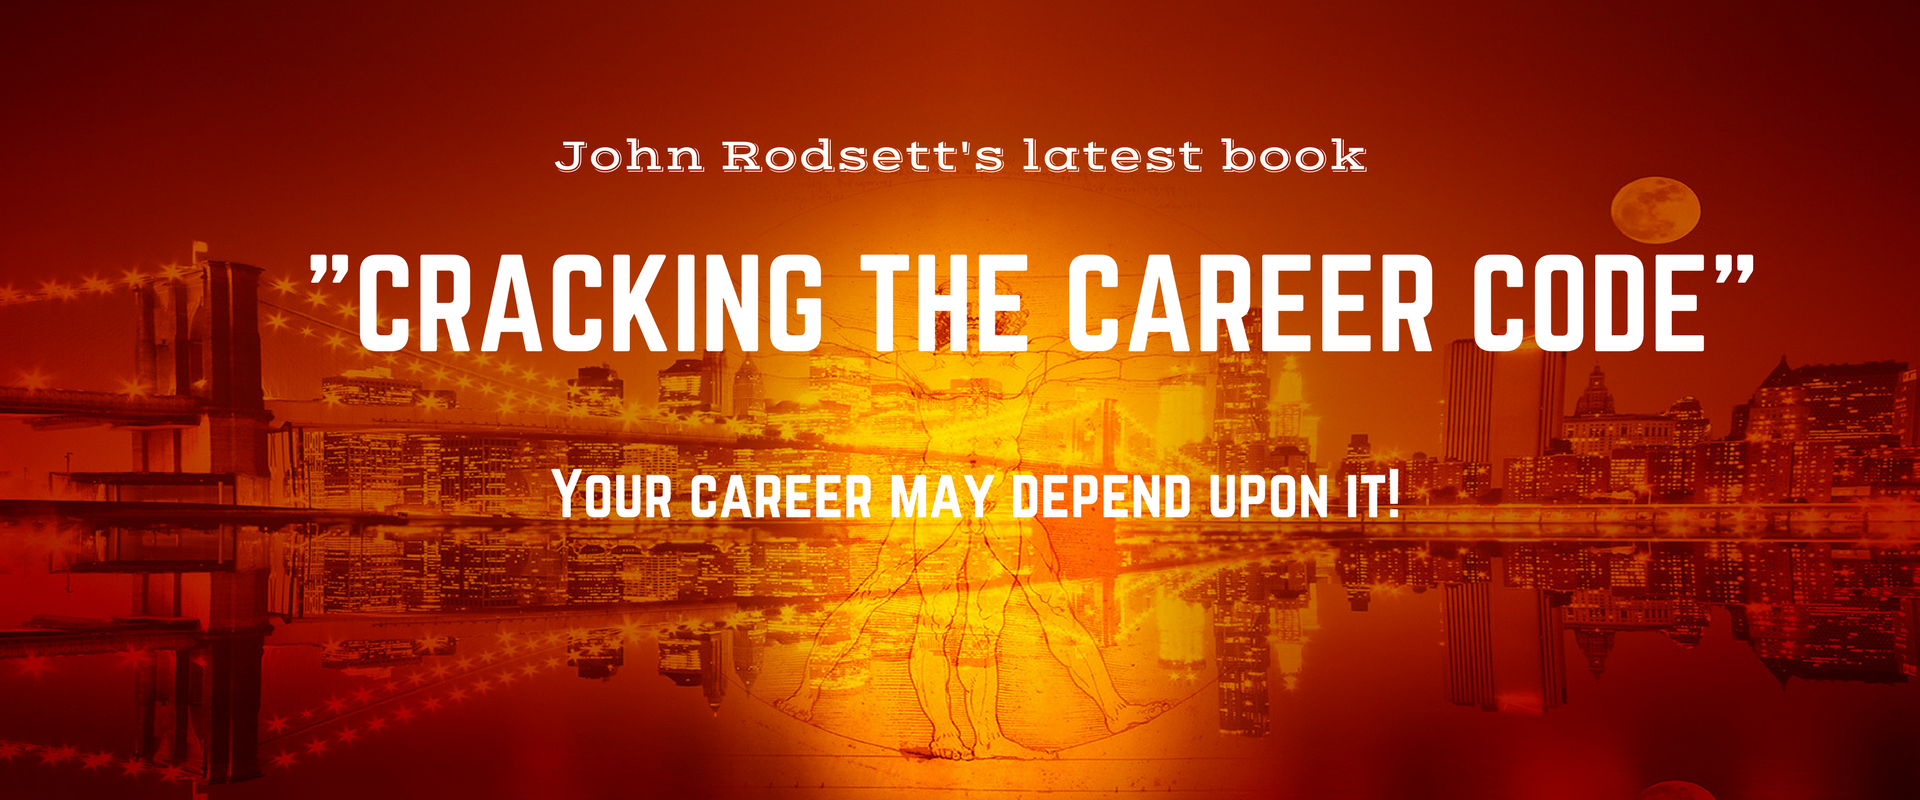 CRACKING THE CAREER CODE (2)